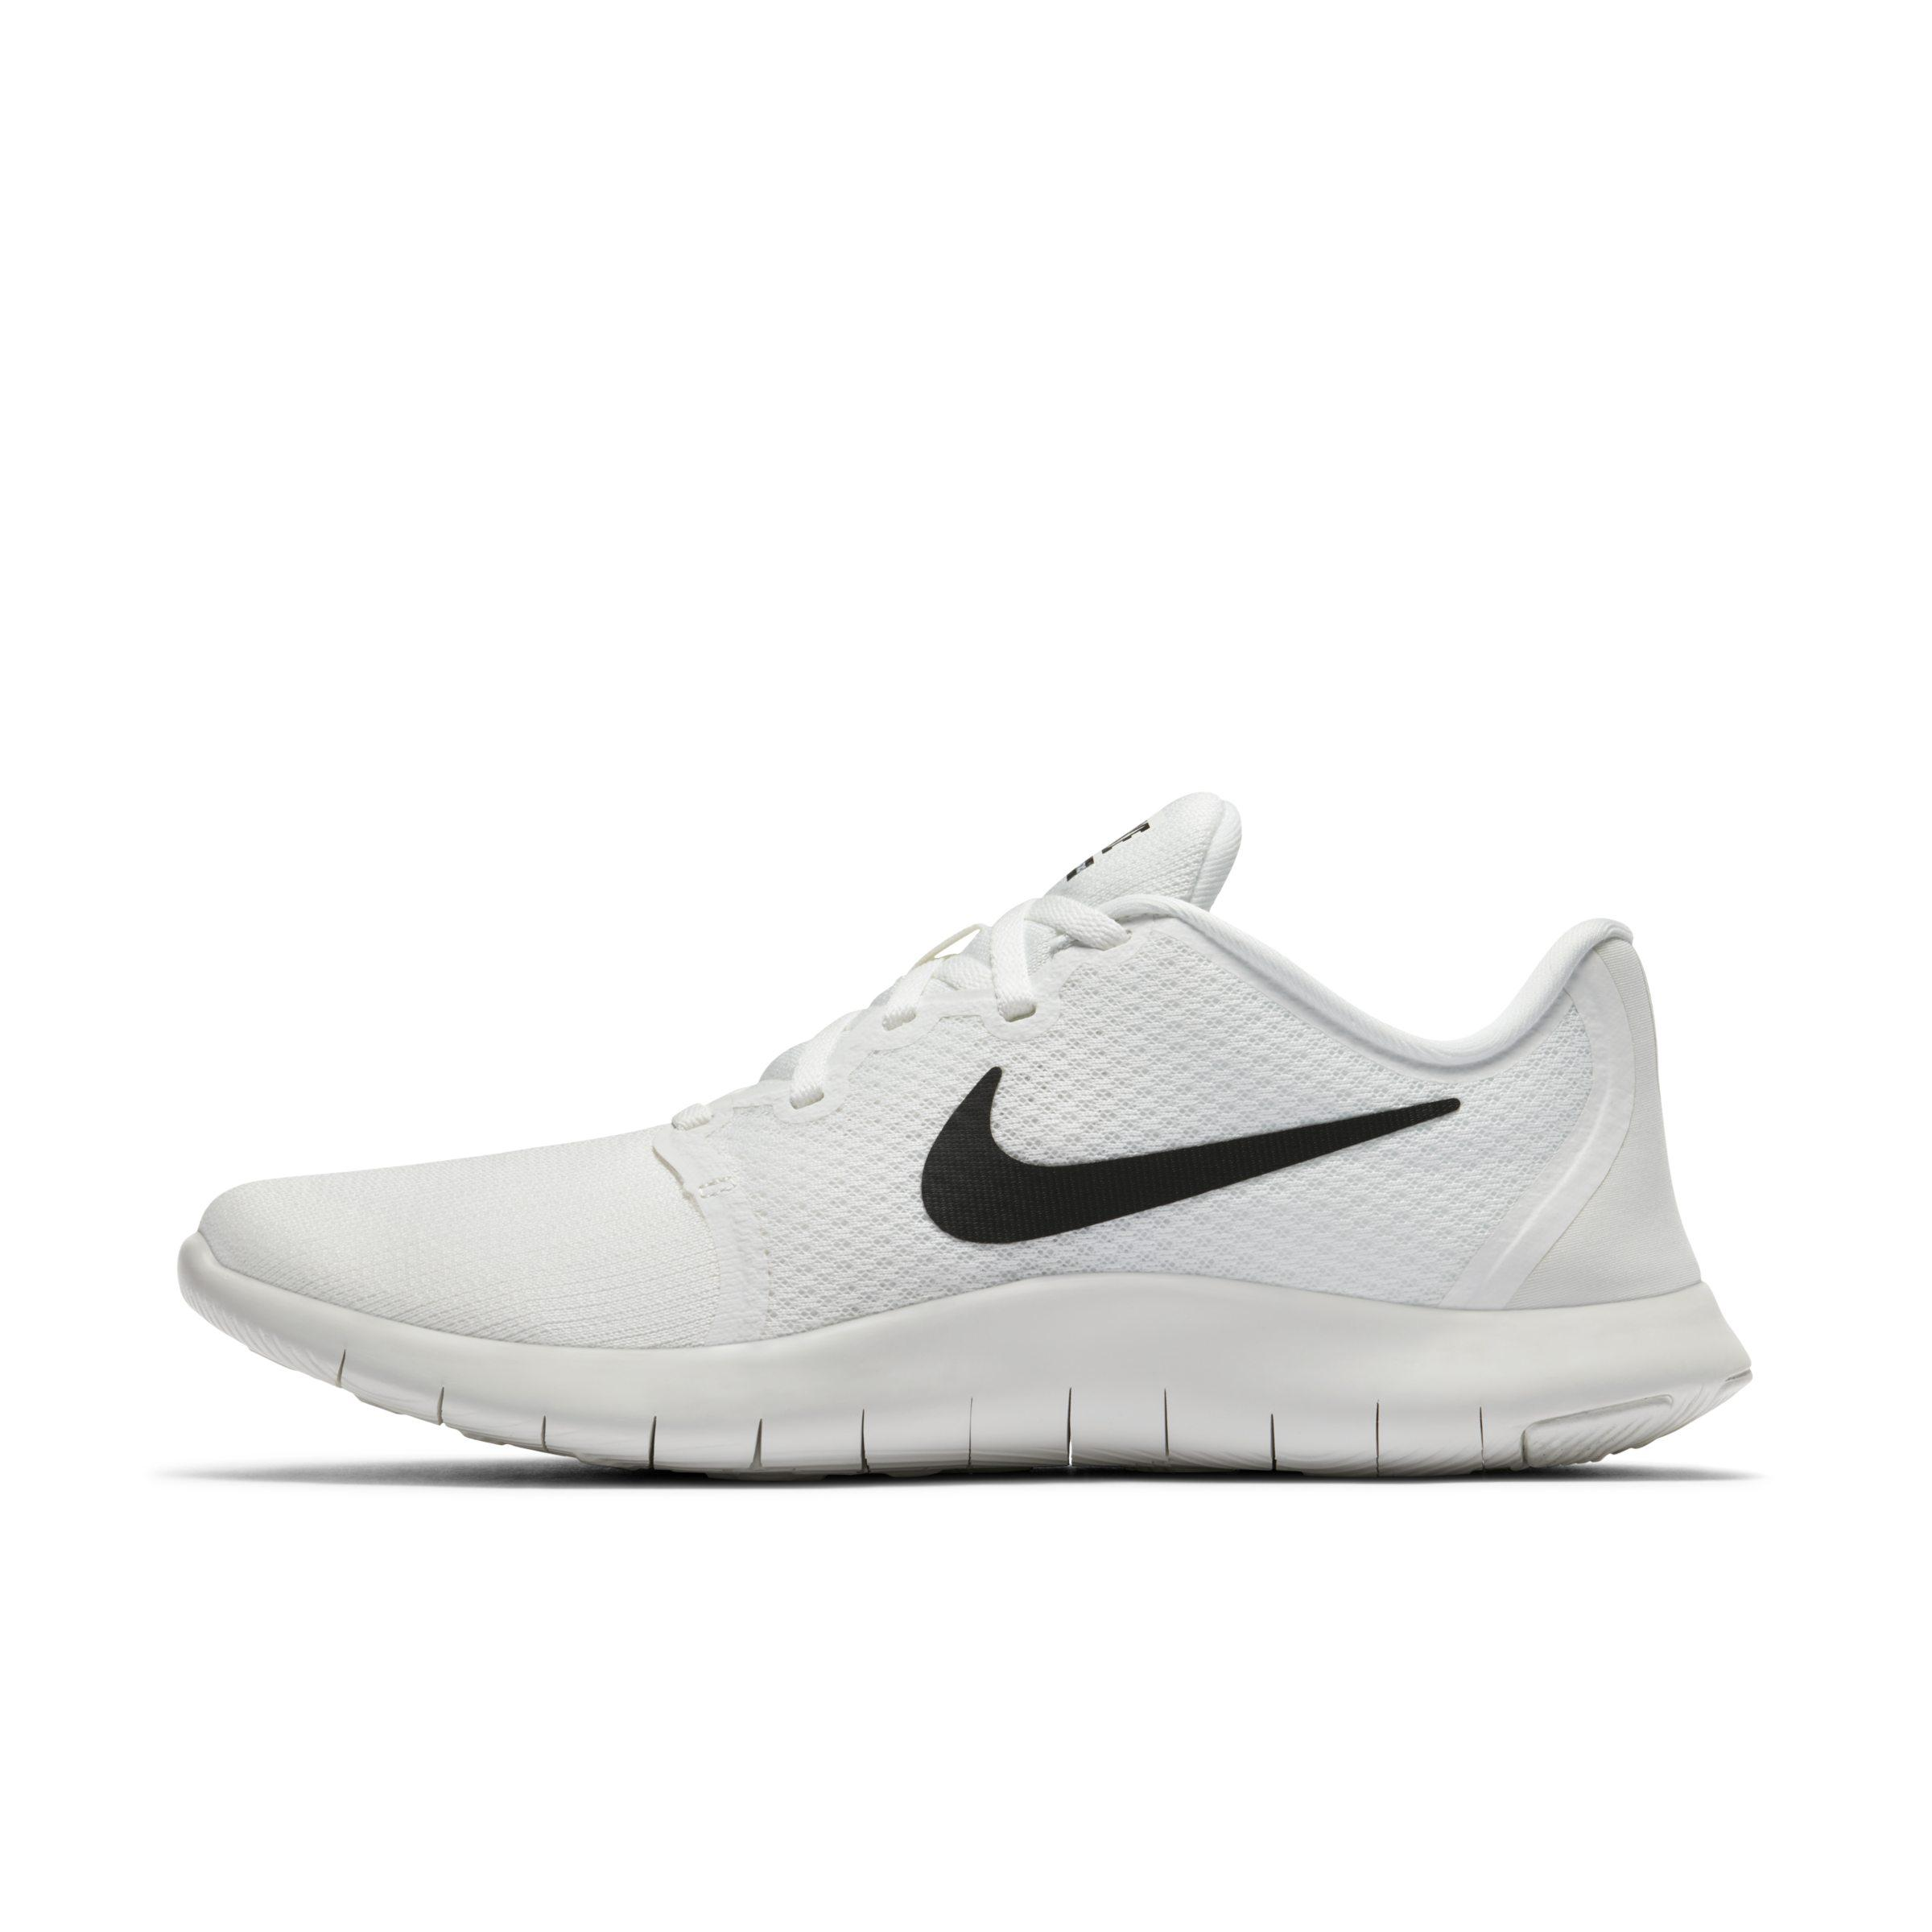 f202ae99e7291 Nike Flex Contact 2 Running Shoe in White for Men - Lyst